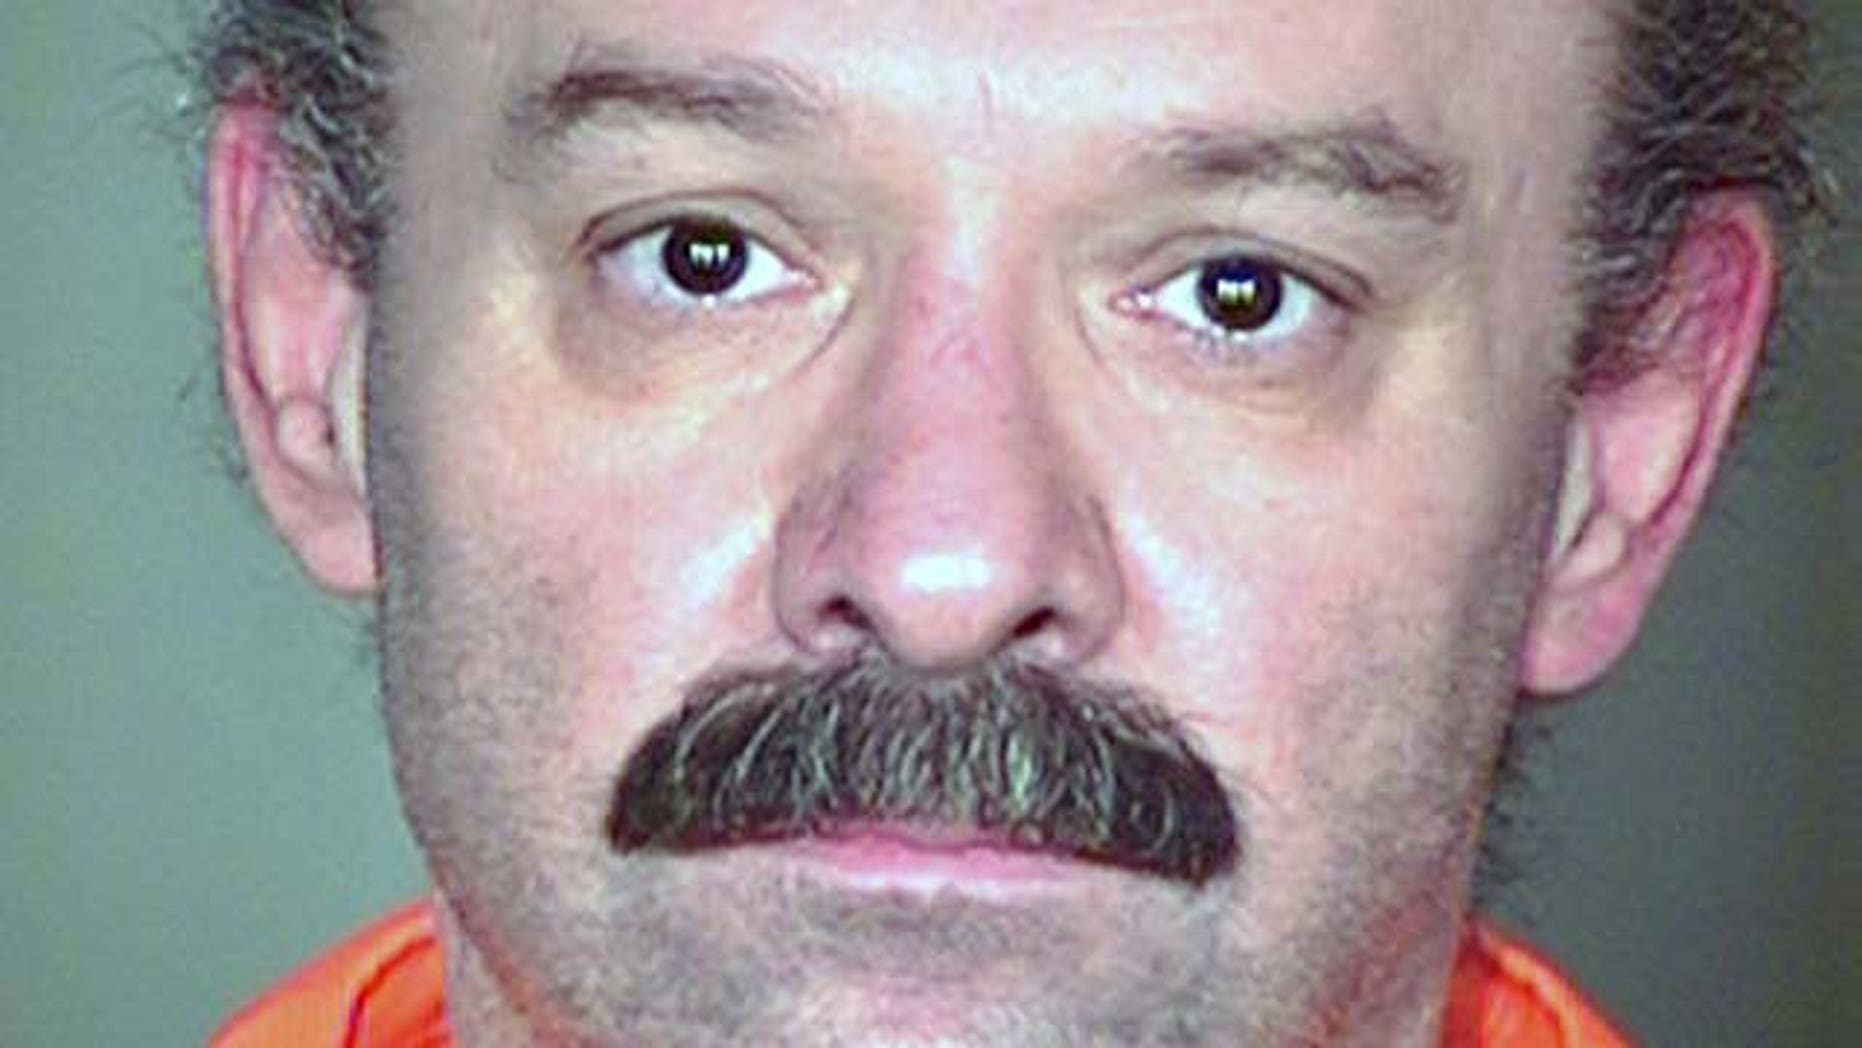 This undated photo provided by the Arizona Department of Corrections shows inmate Joseph Rudolph Wood. (AP Photo/Arizona Department of Corrections)